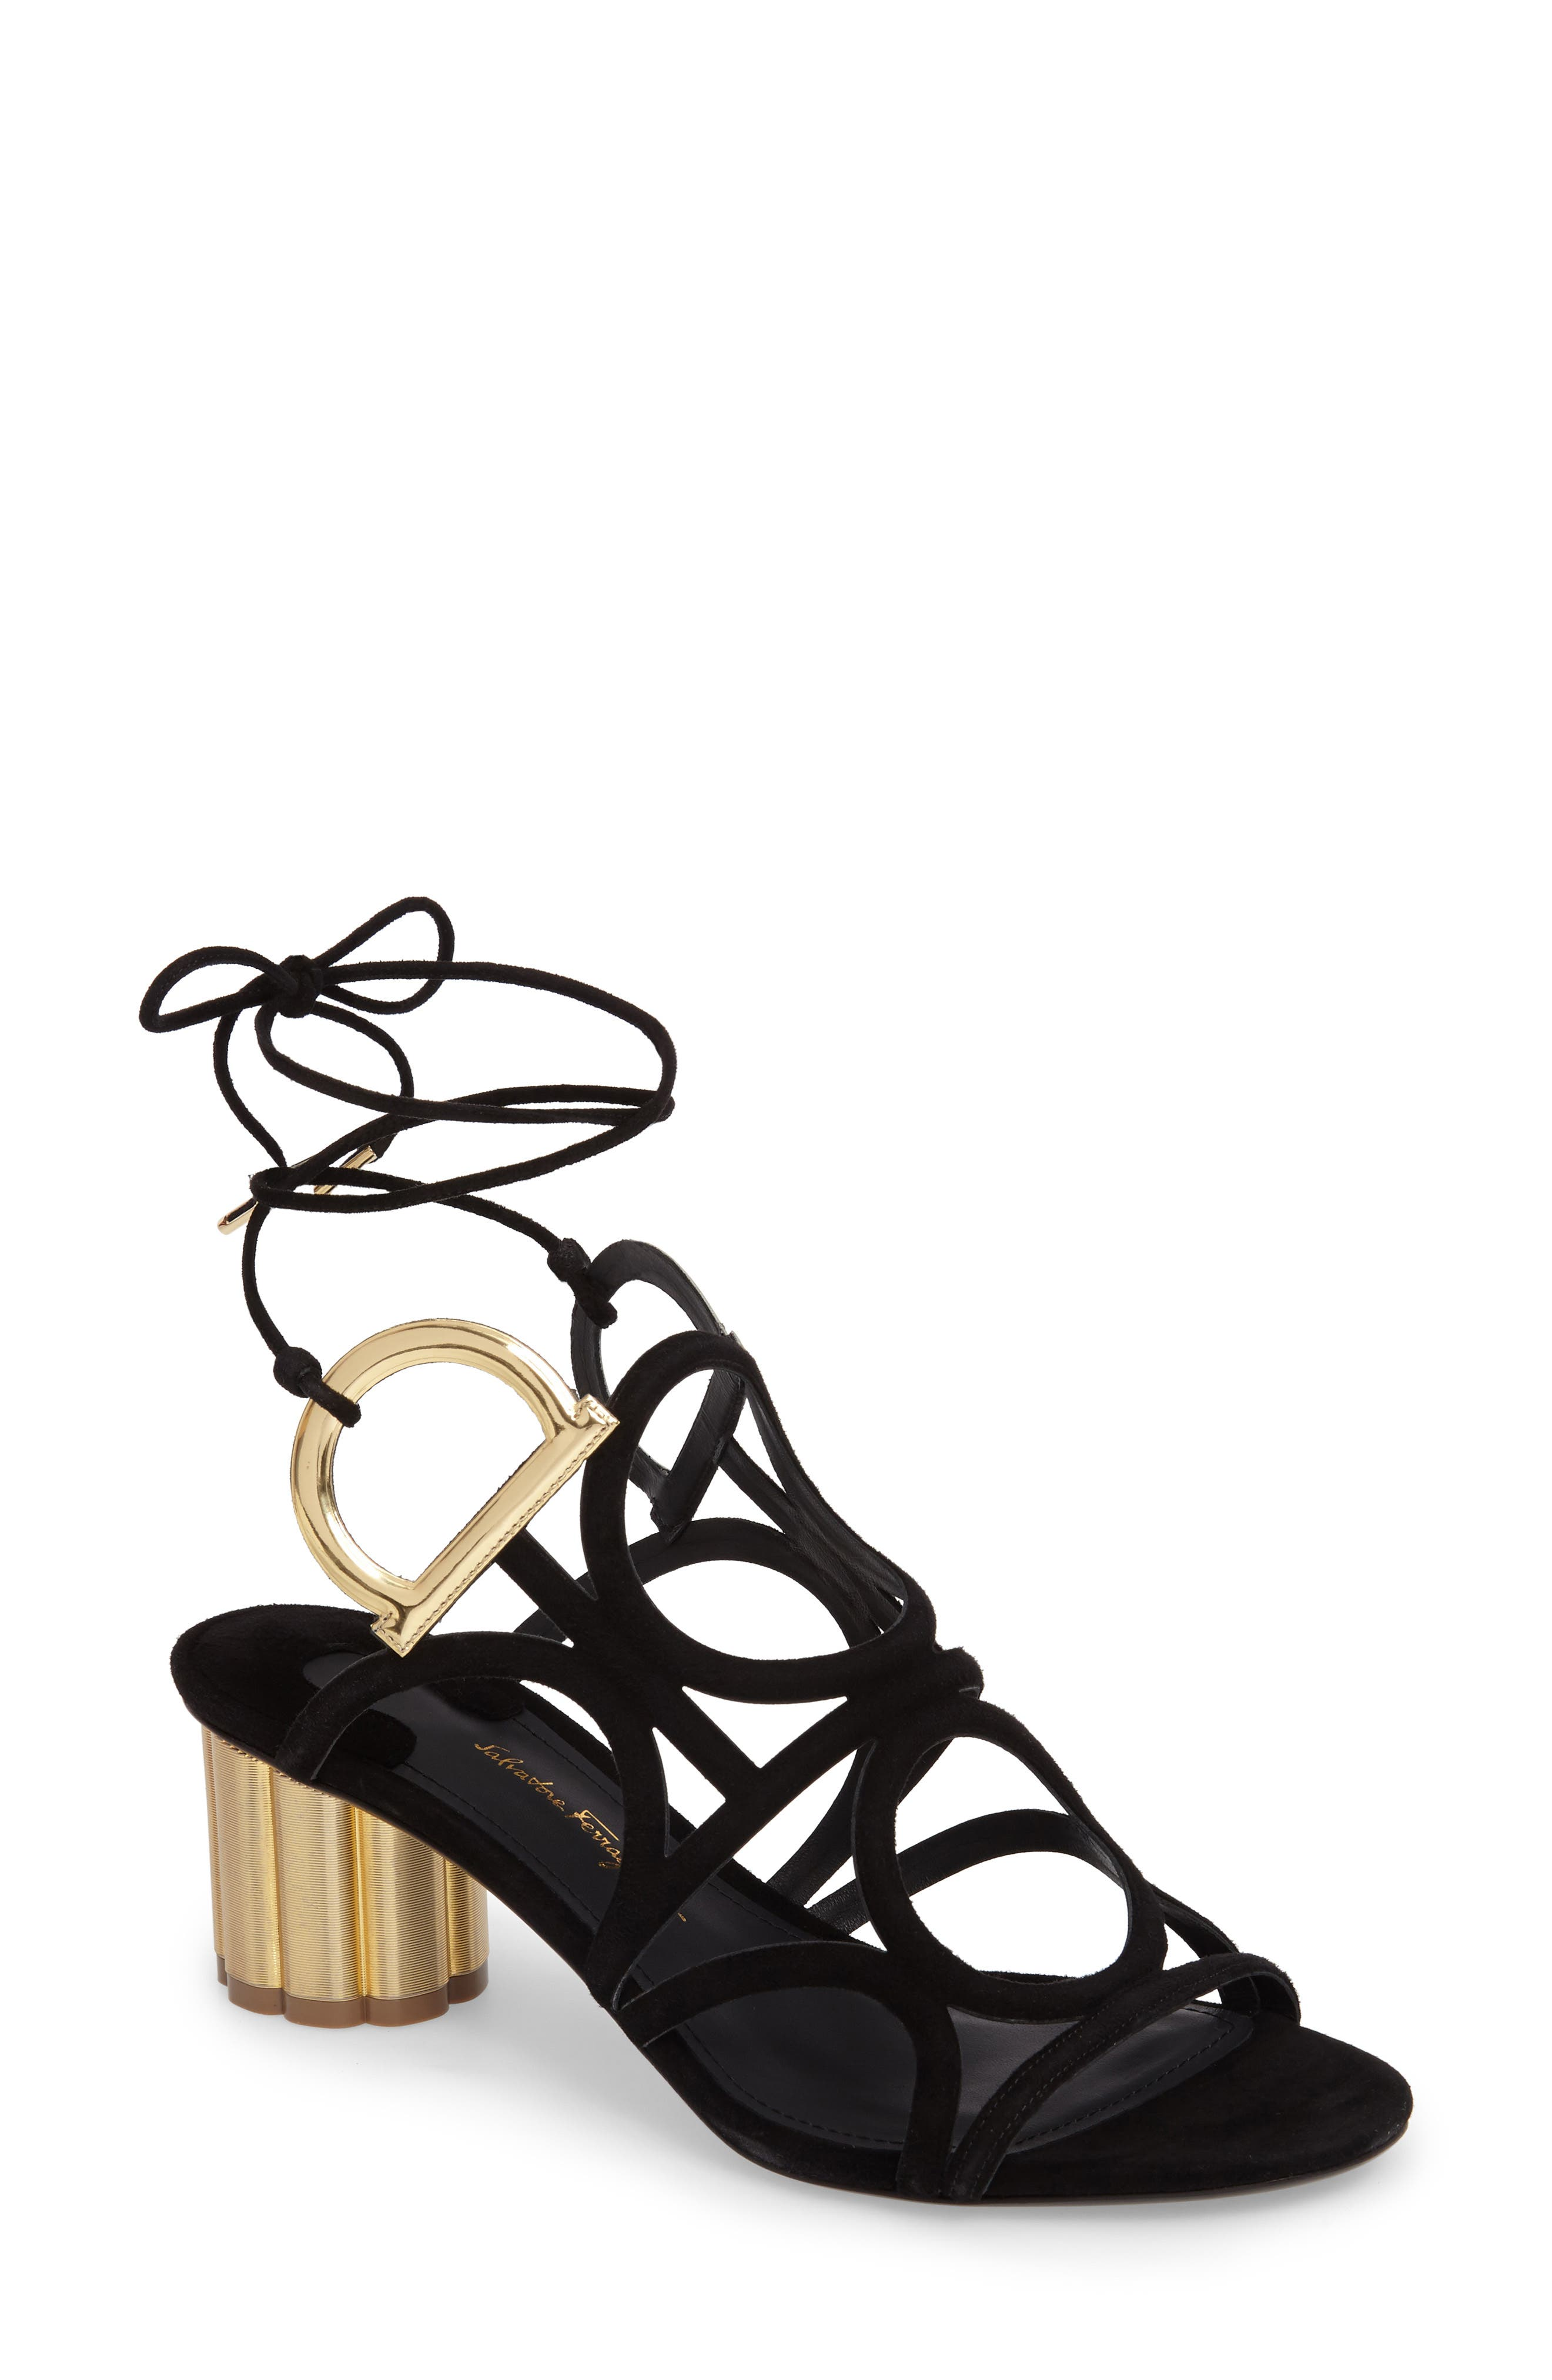 Vinci Lace-Up Block Heel Sandal,                             Main thumbnail 1, color,                             BLACK SUEDE